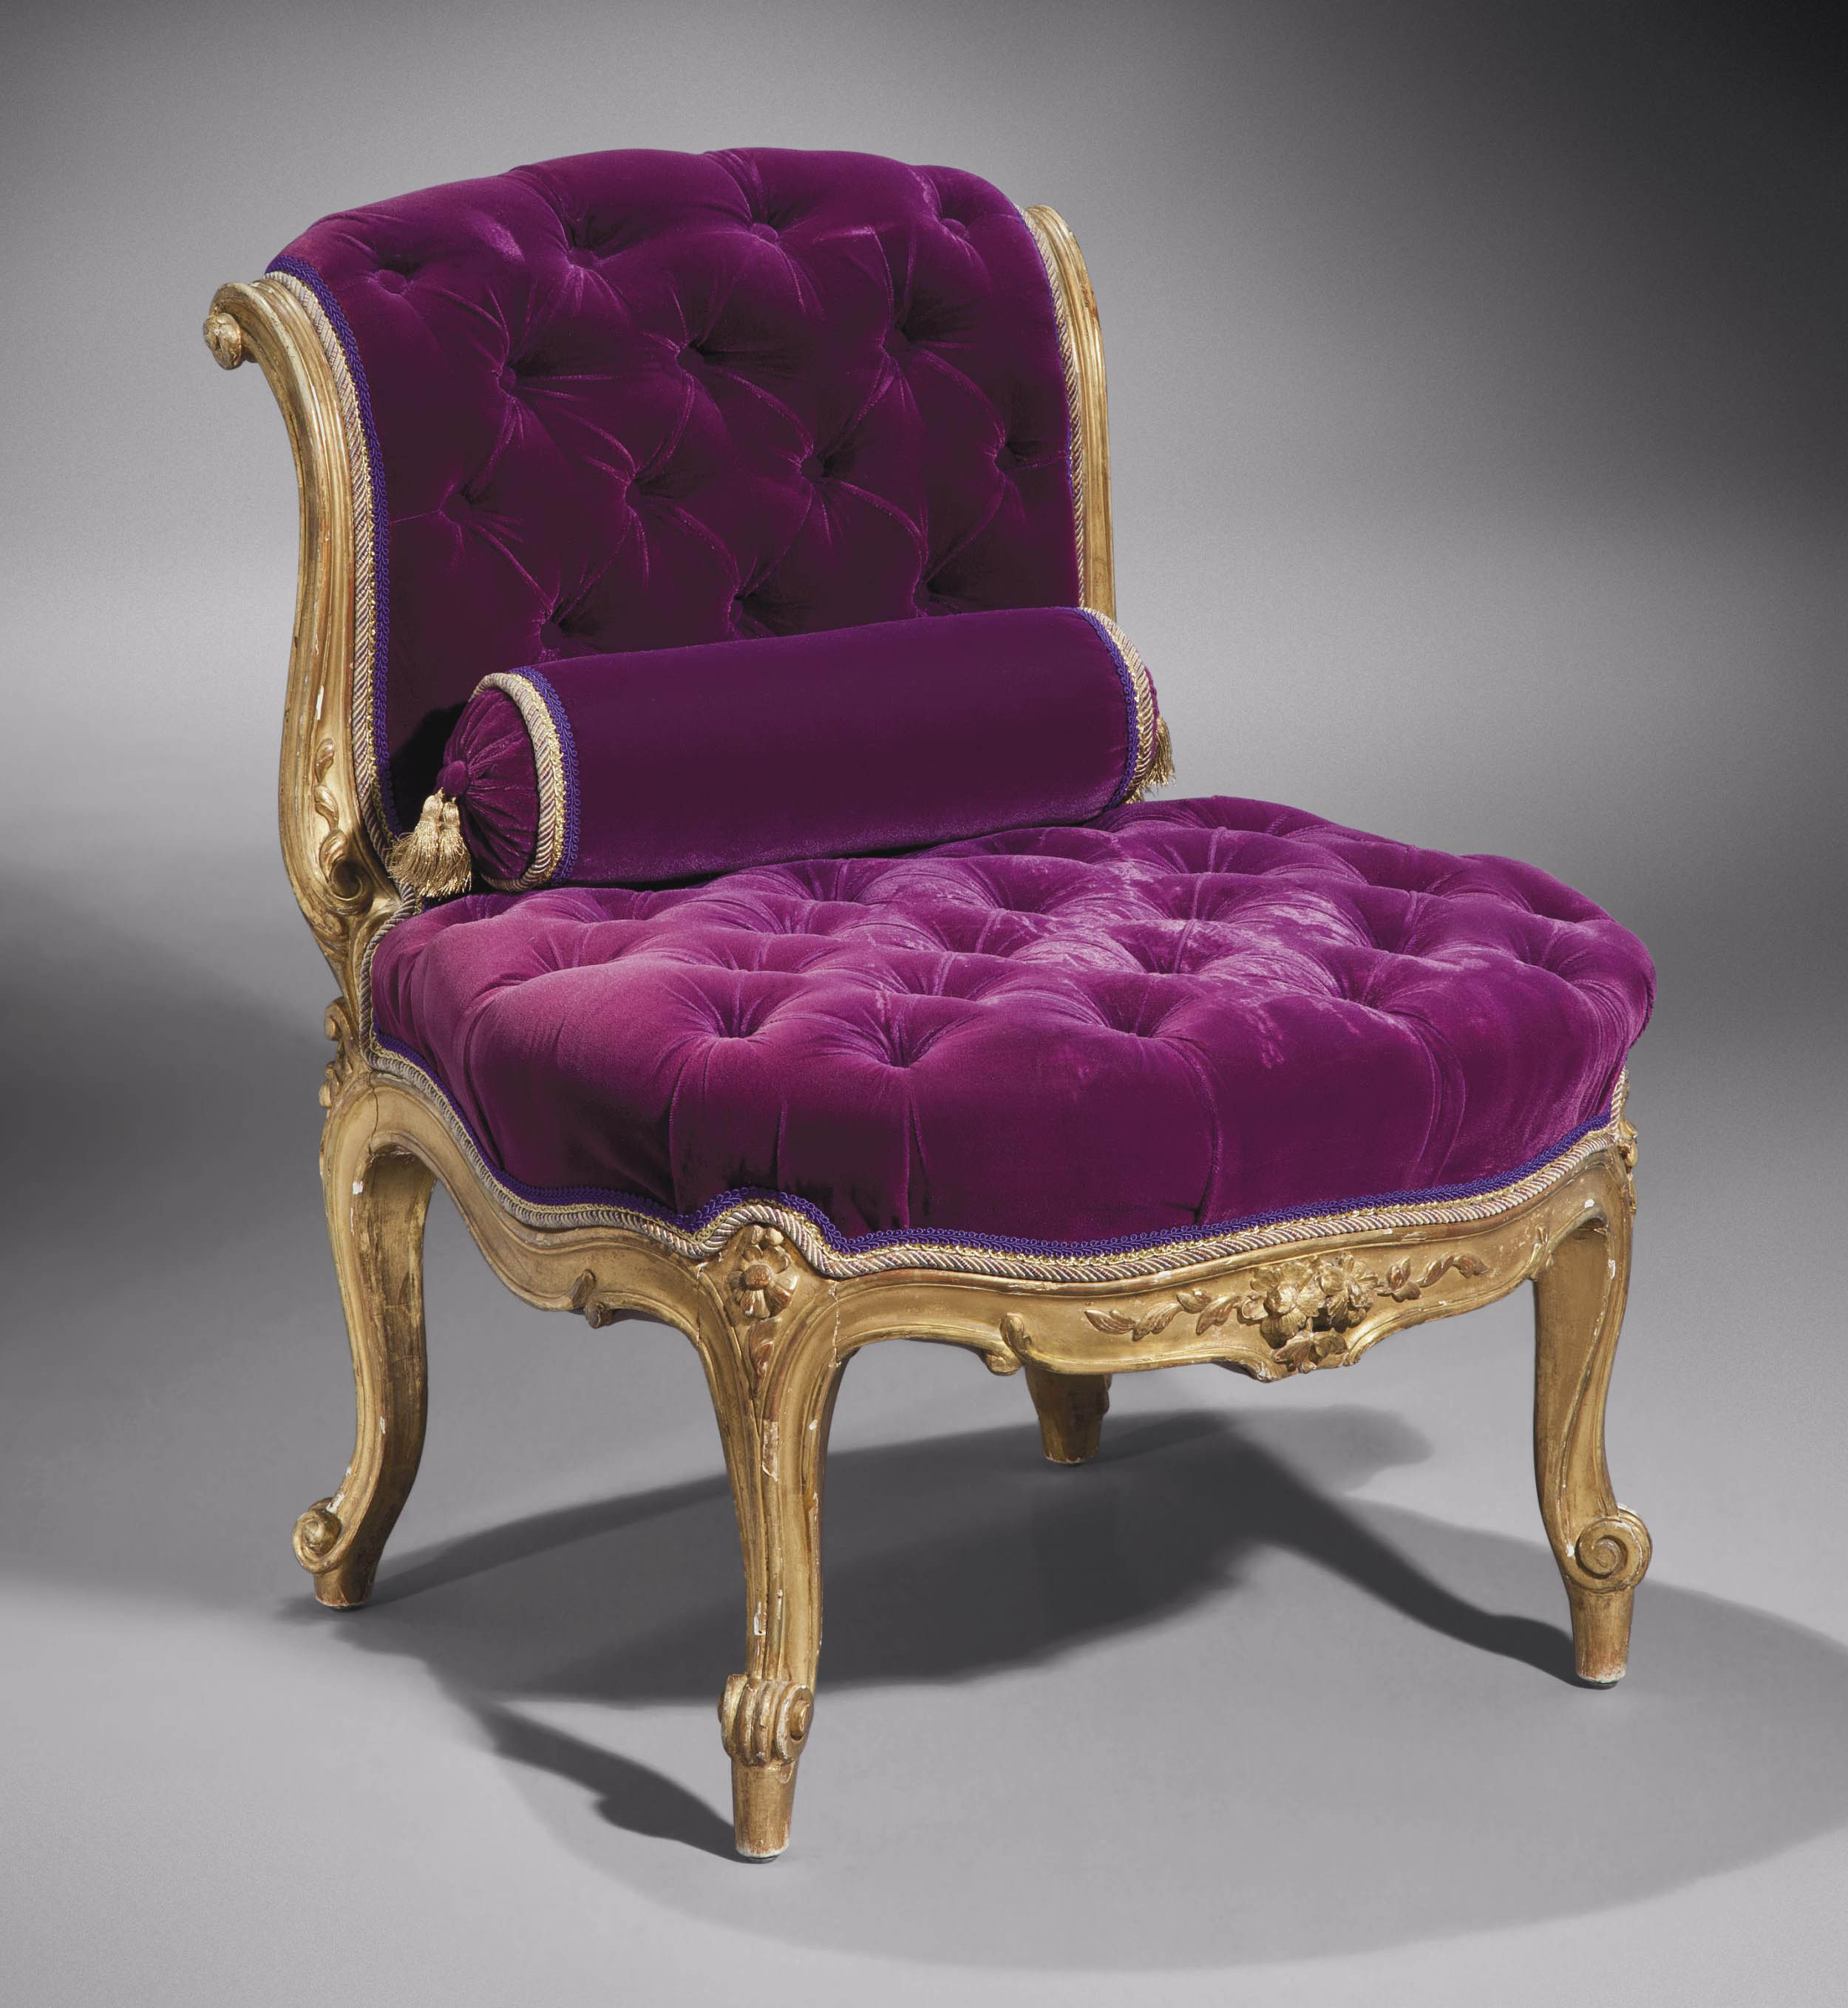 chauffeuse d 39 epoque napoleon iii milieu du xixeme siecle christie 39 s. Black Bedroom Furniture Sets. Home Design Ideas